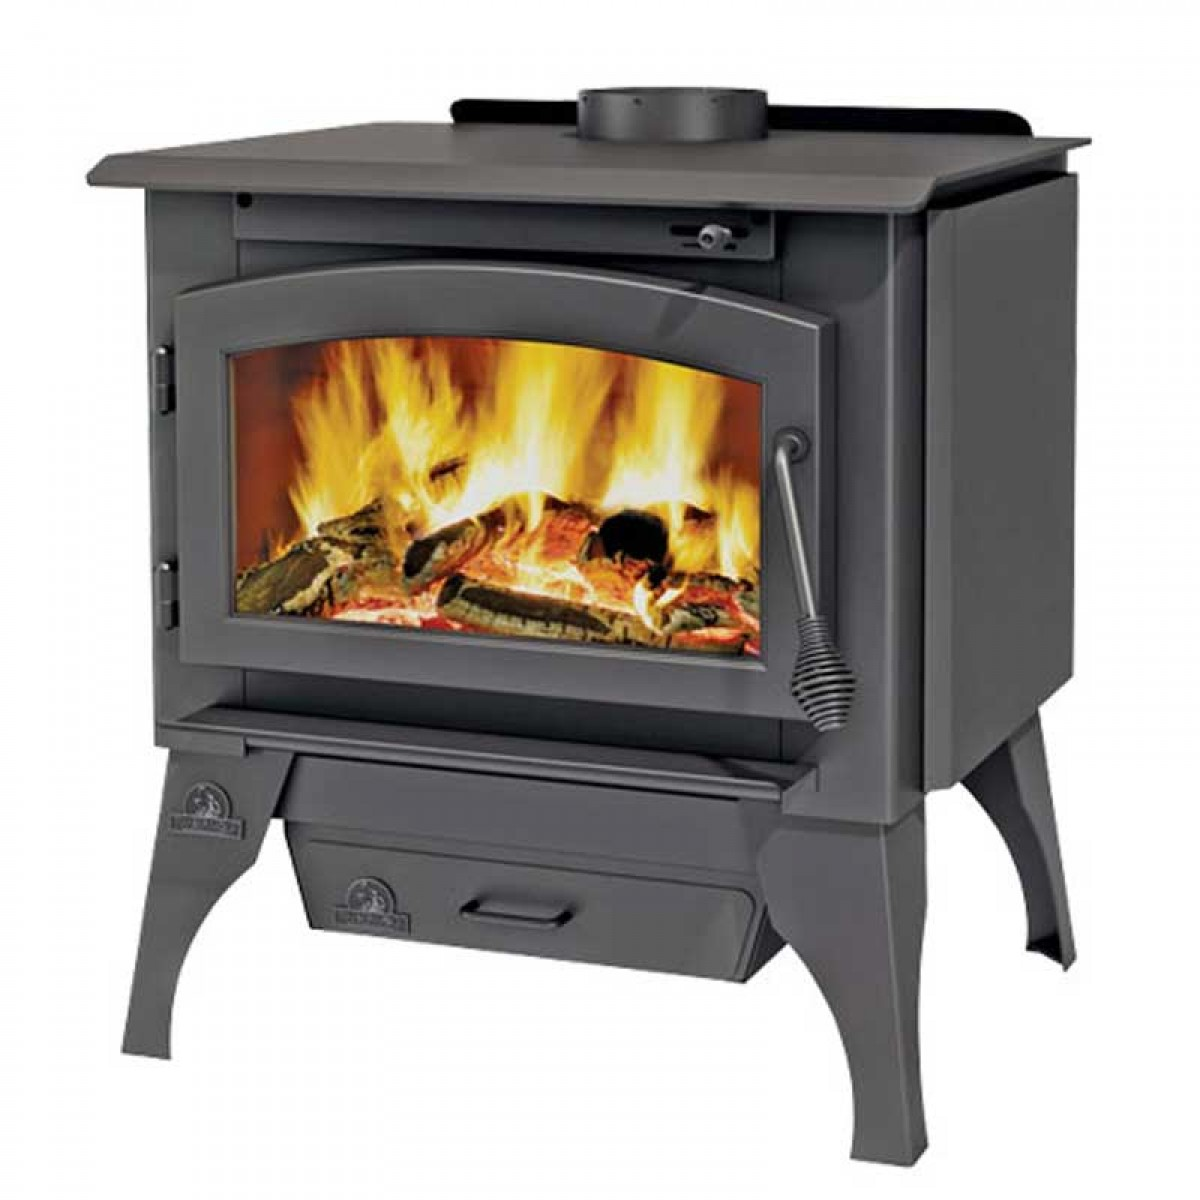 small en hearth epa with certified burning wood ft fireplace pleasant blower p home the stove sq btu